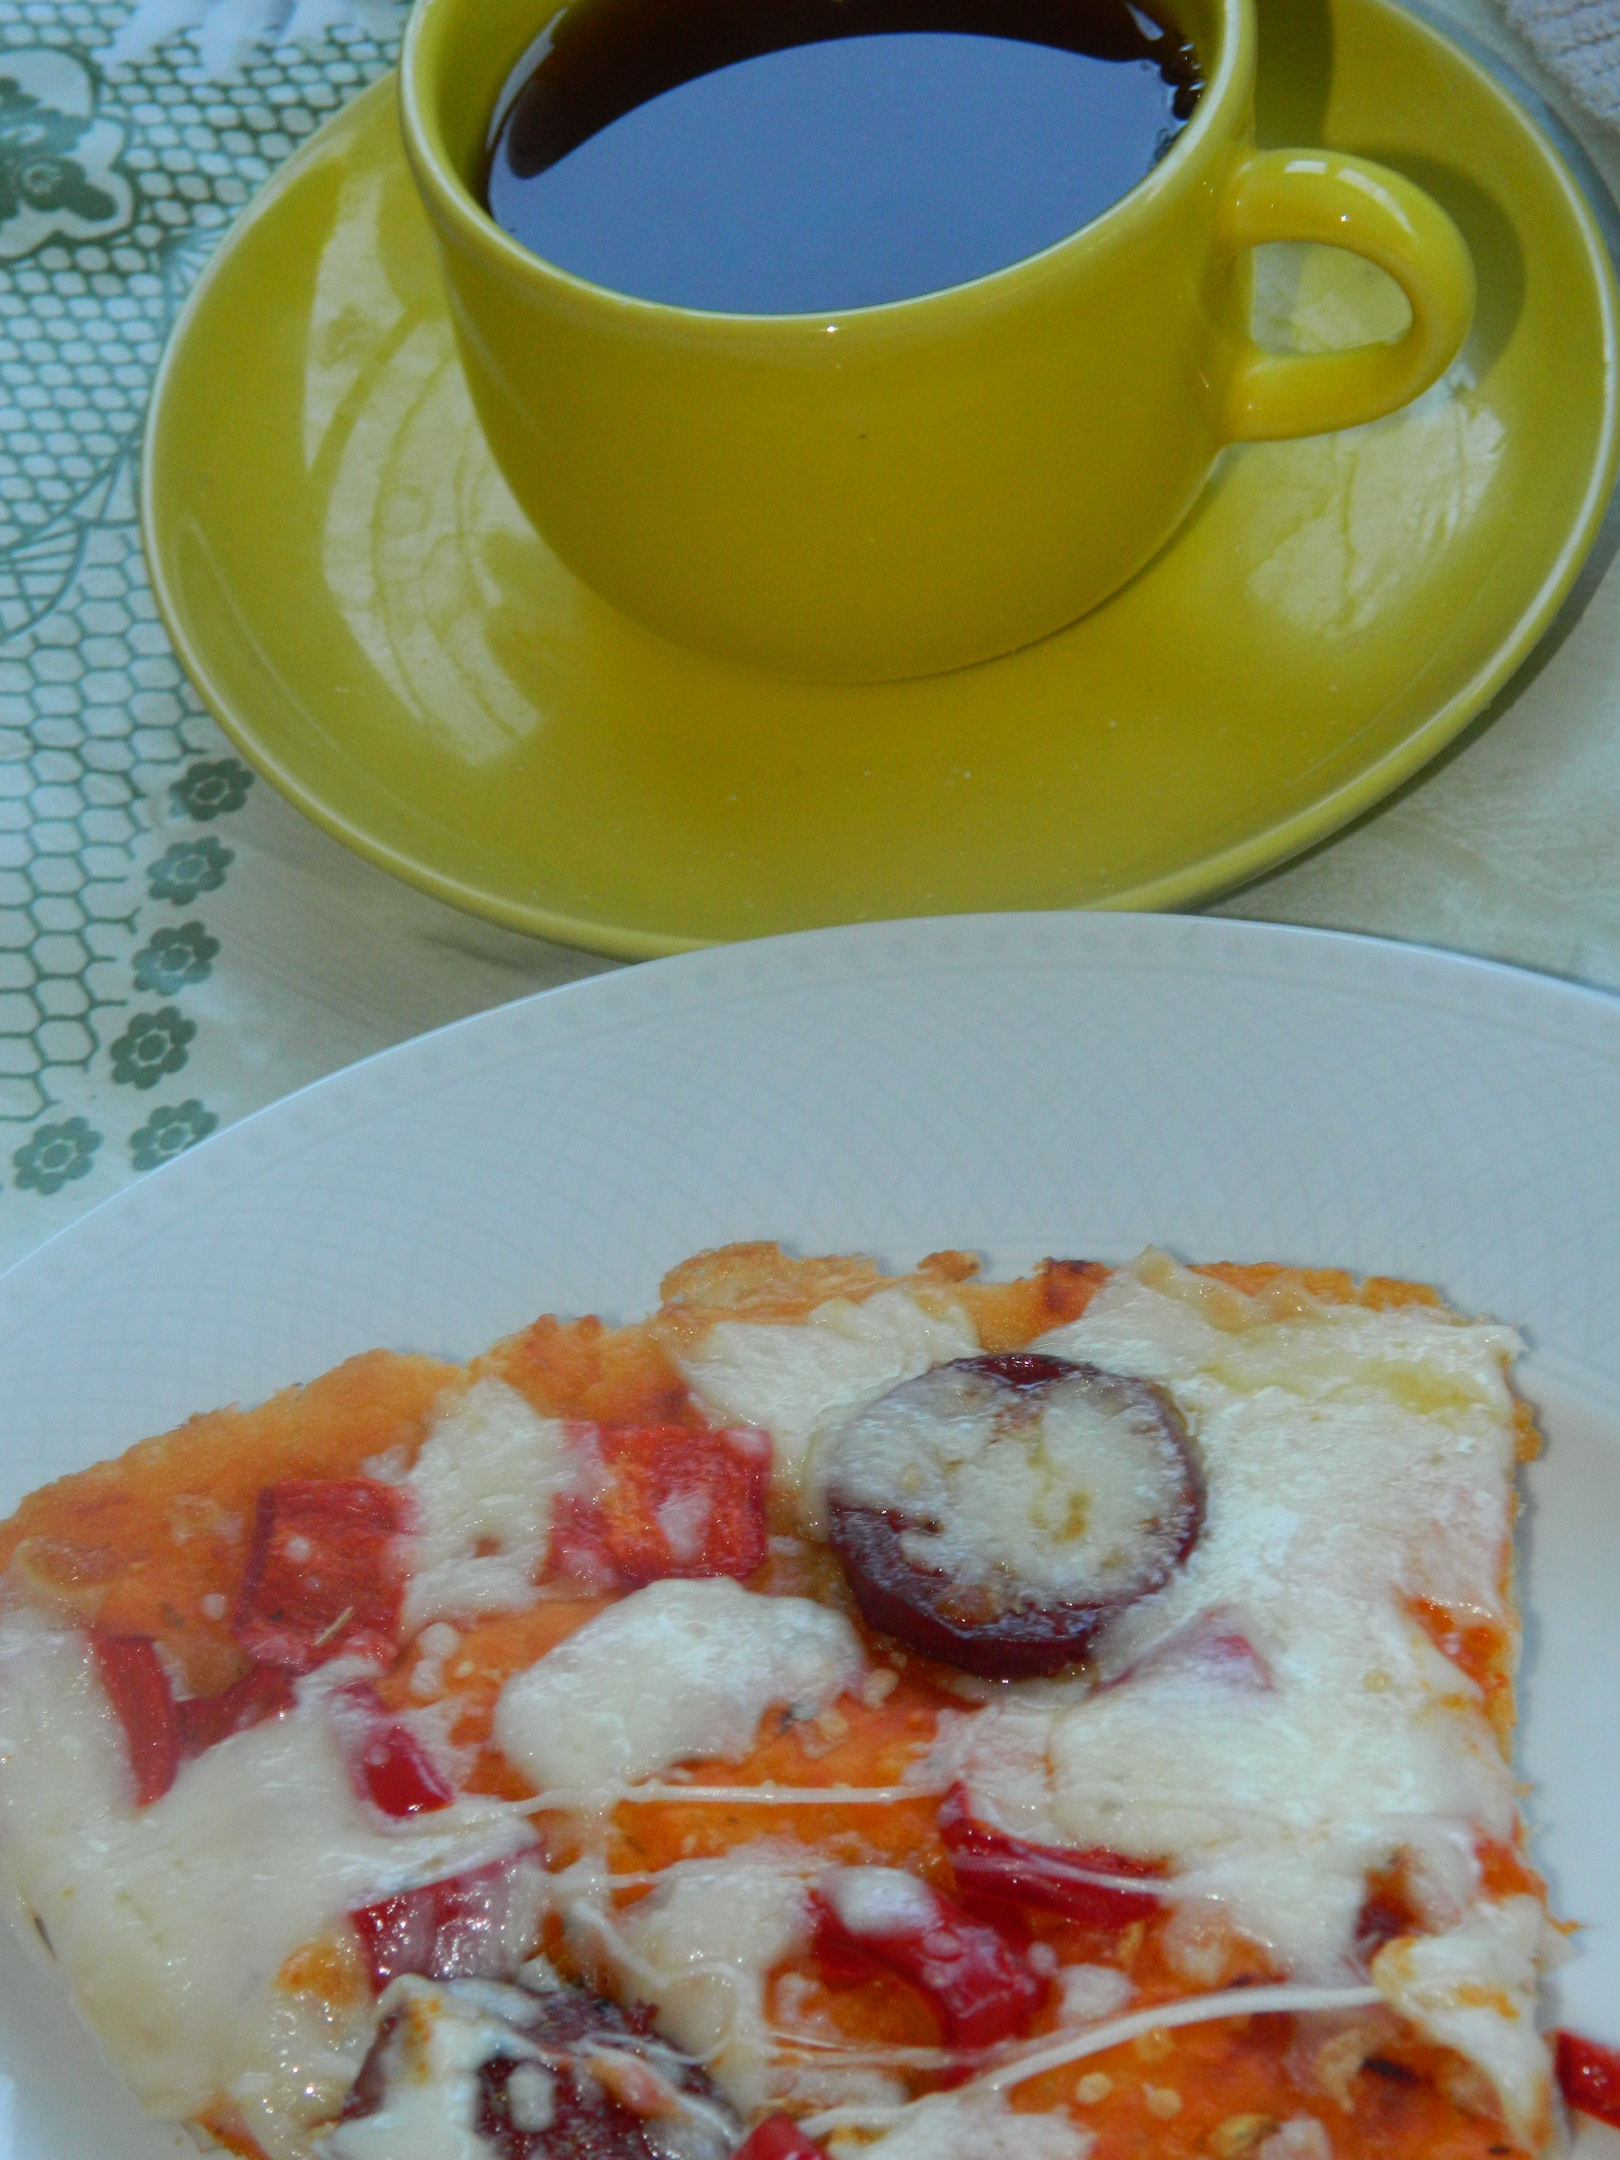 Homemade Pizza and Tea, Breakfast, Delicious, Dinner, Drink, HQ Photo